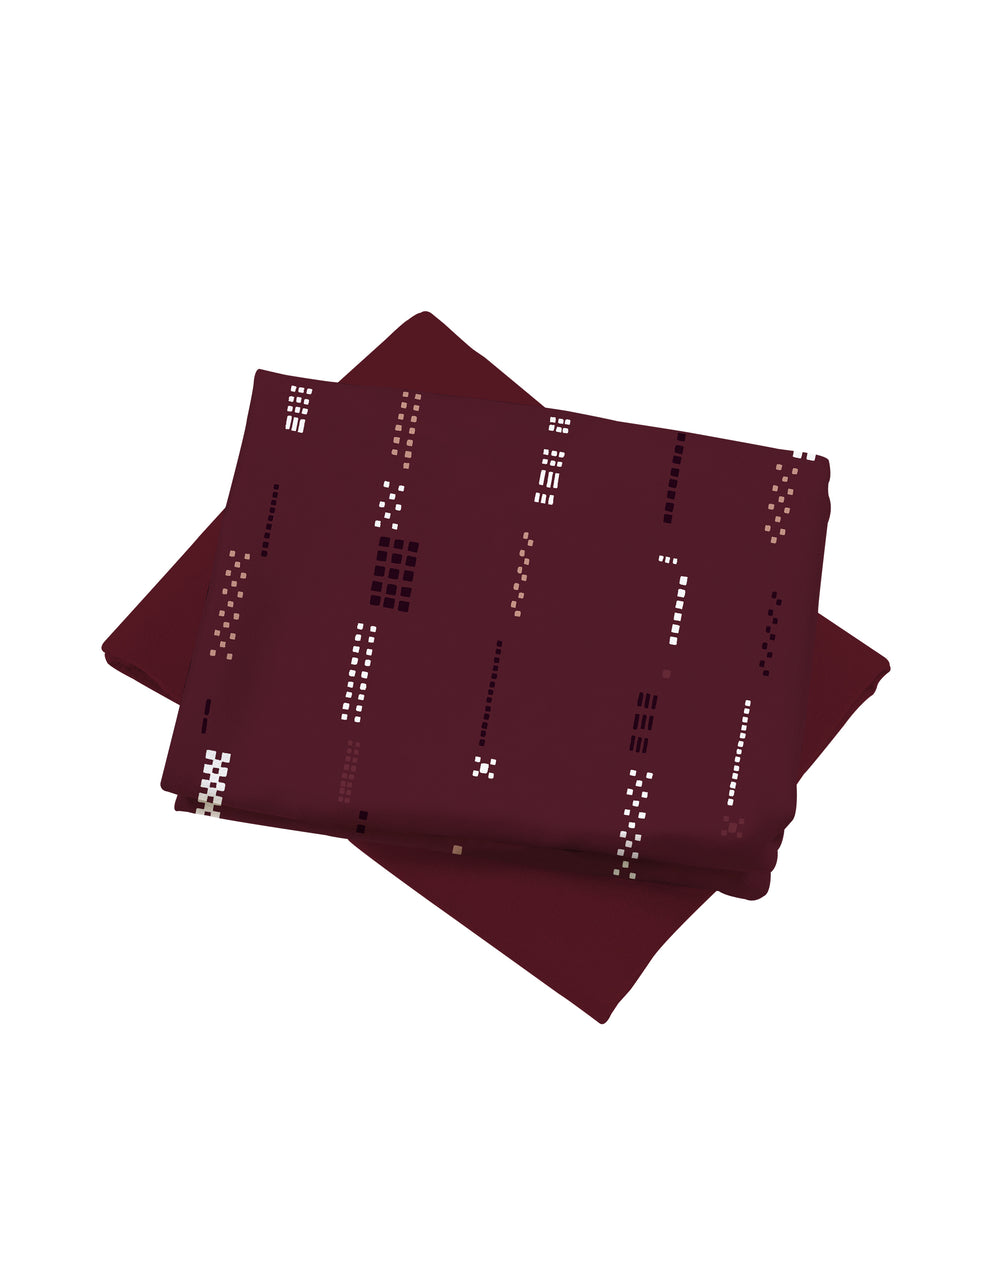 Mix and Match Como Crepe Digital Clarissa (Marvel Burgundy)